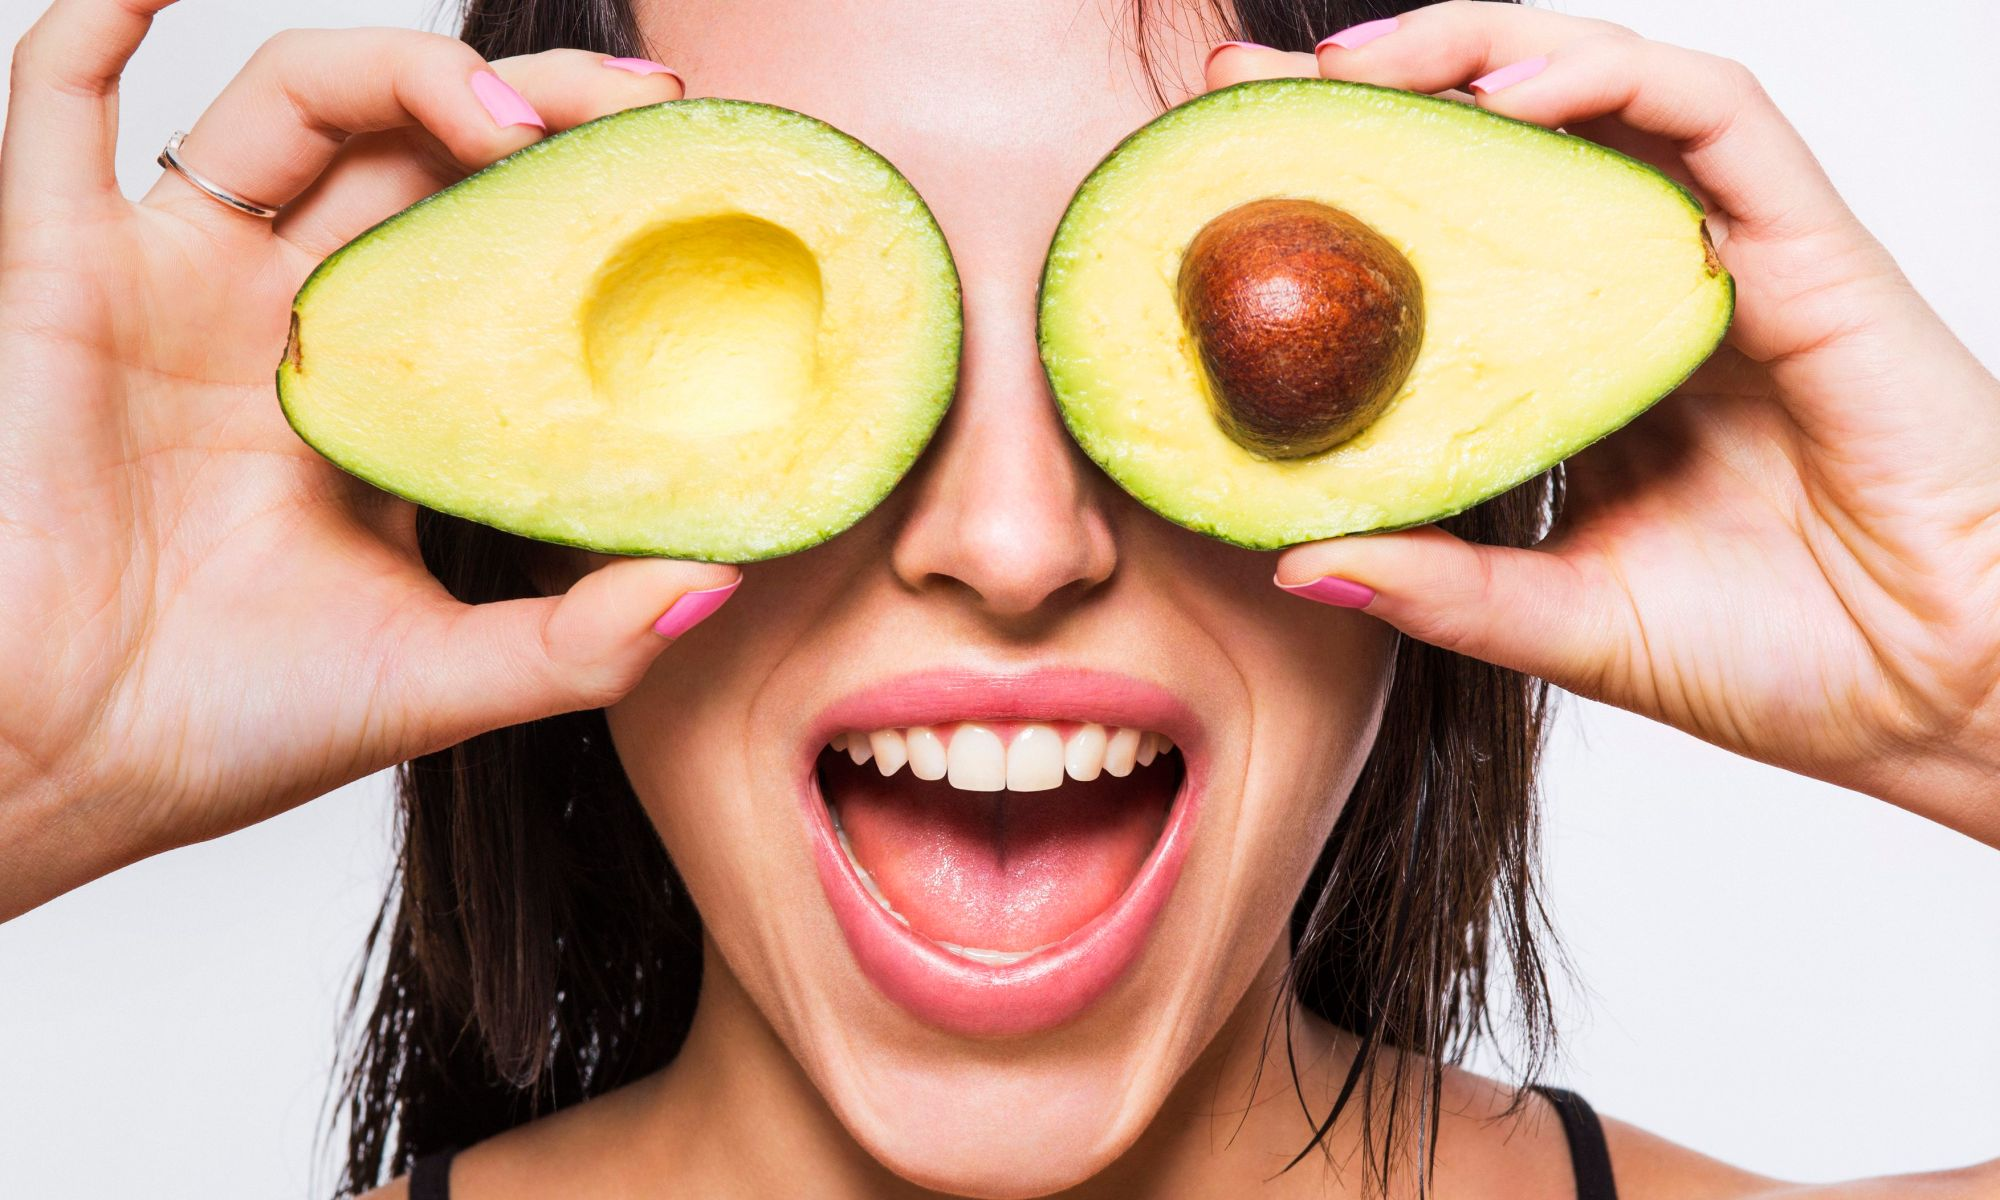 Avocados From South America